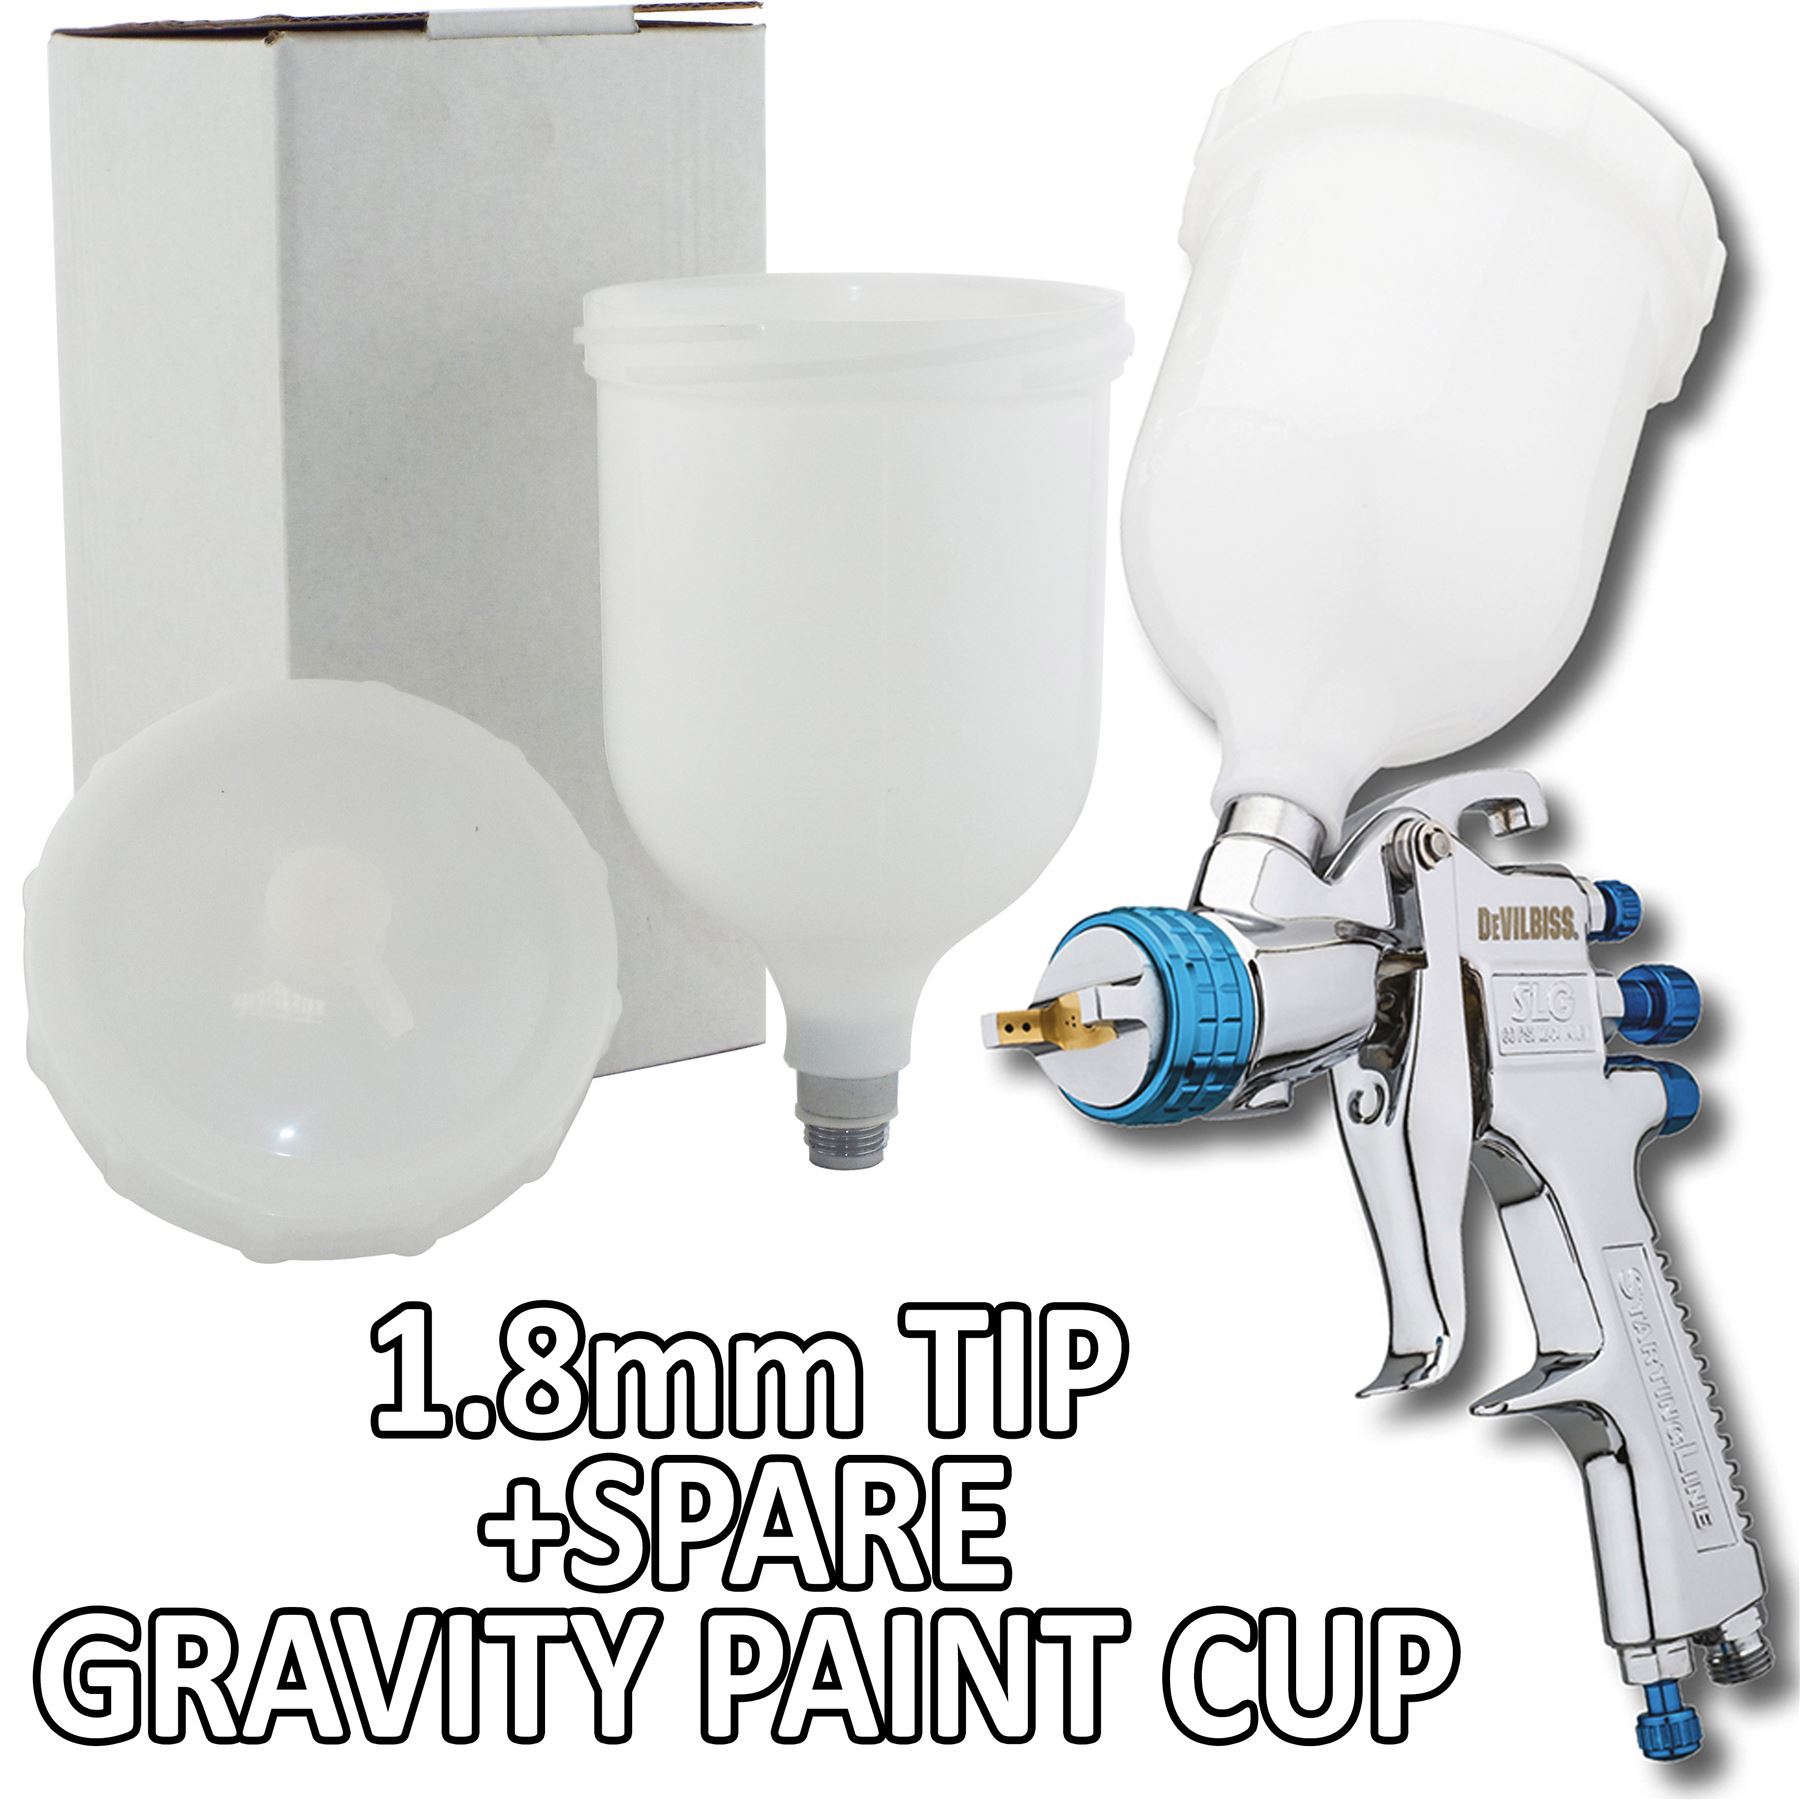 devilbiss slg 620 spray gun gravity feed solvent paint primer spare cup ebay. Black Bedroom Furniture Sets. Home Design Ideas